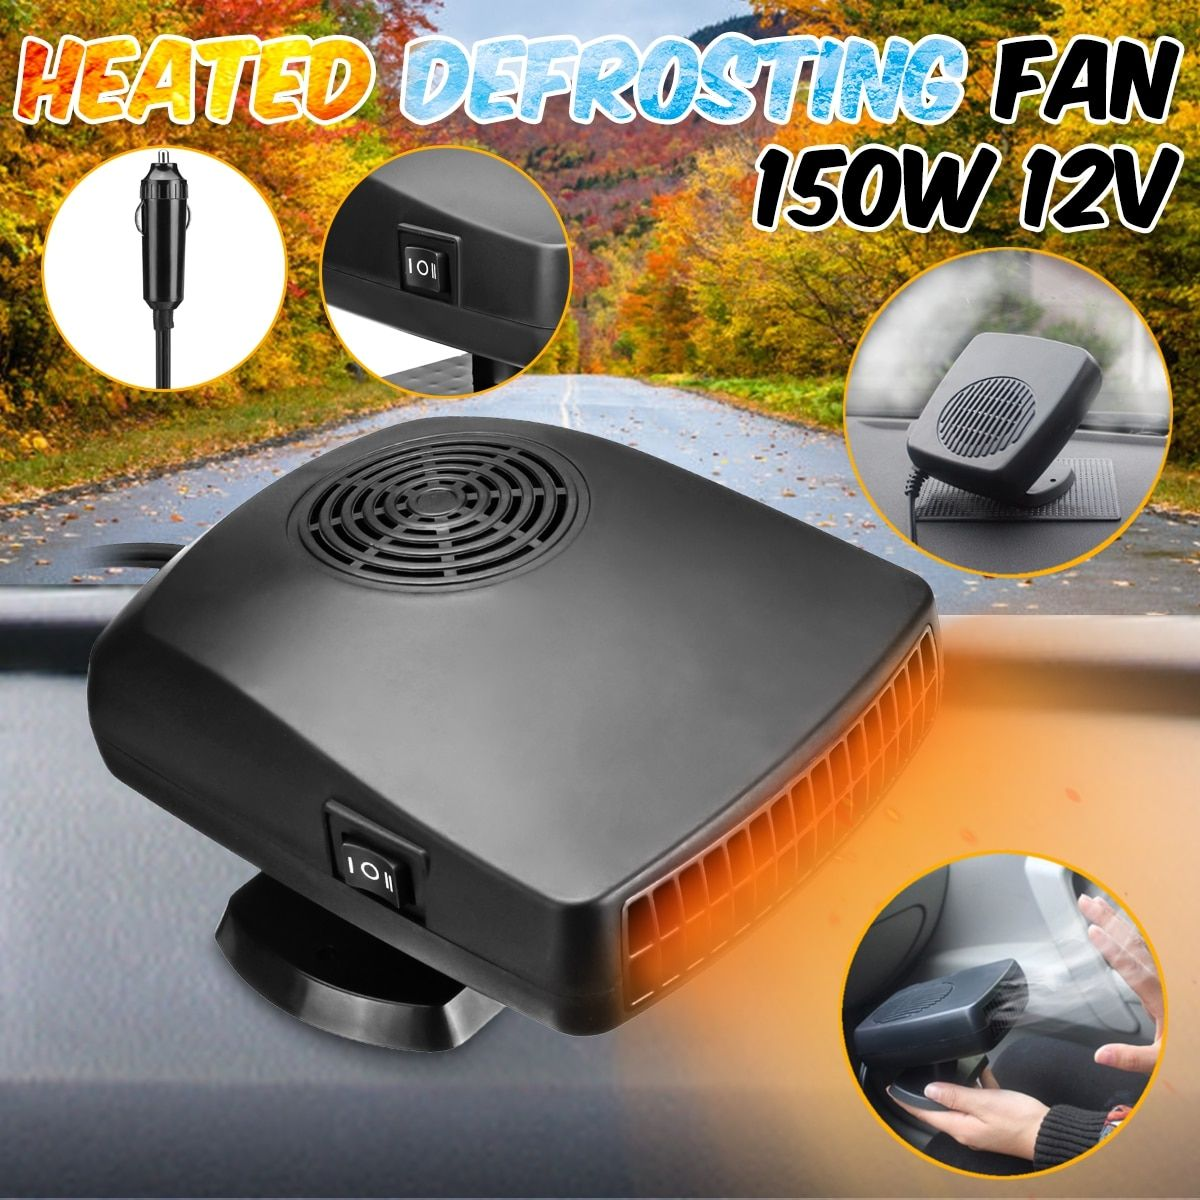 12 V 150 W Auto auto heizung fan Defroster Demister 2 in 1 tragbare auto fan Driving auto kits Auto heizung Heizung Lüfter Demister